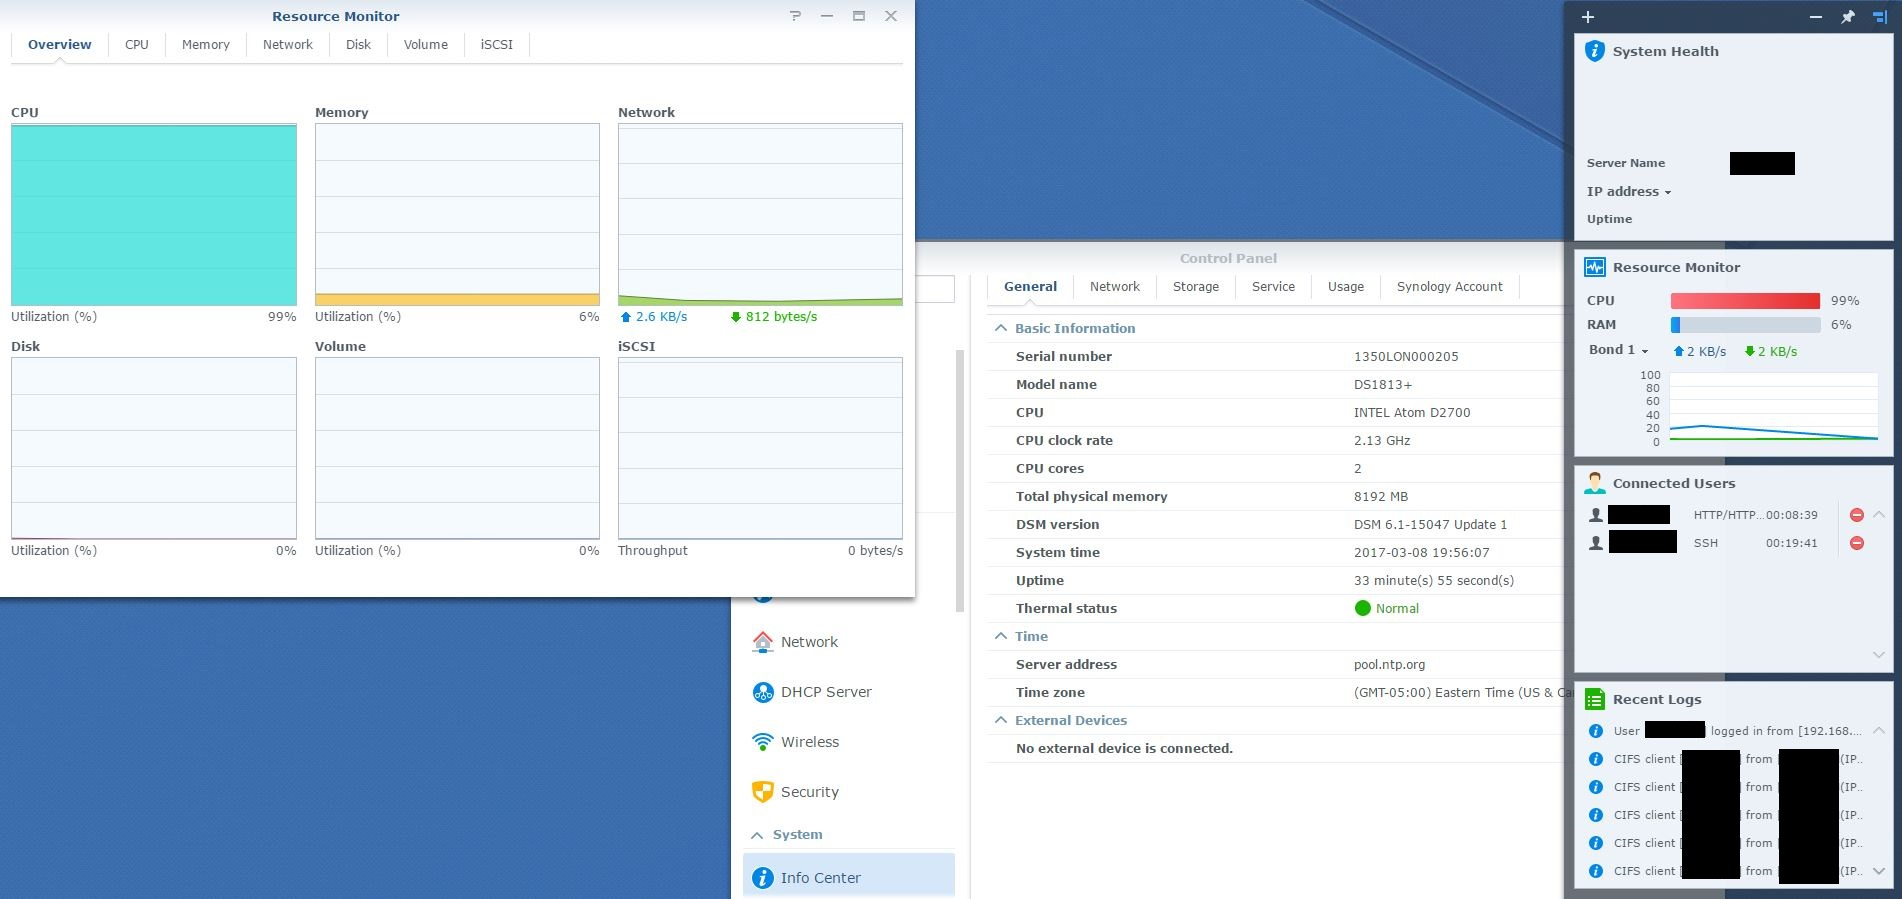 DS1813+ Ram Upgrade to 8GB | Synology Community